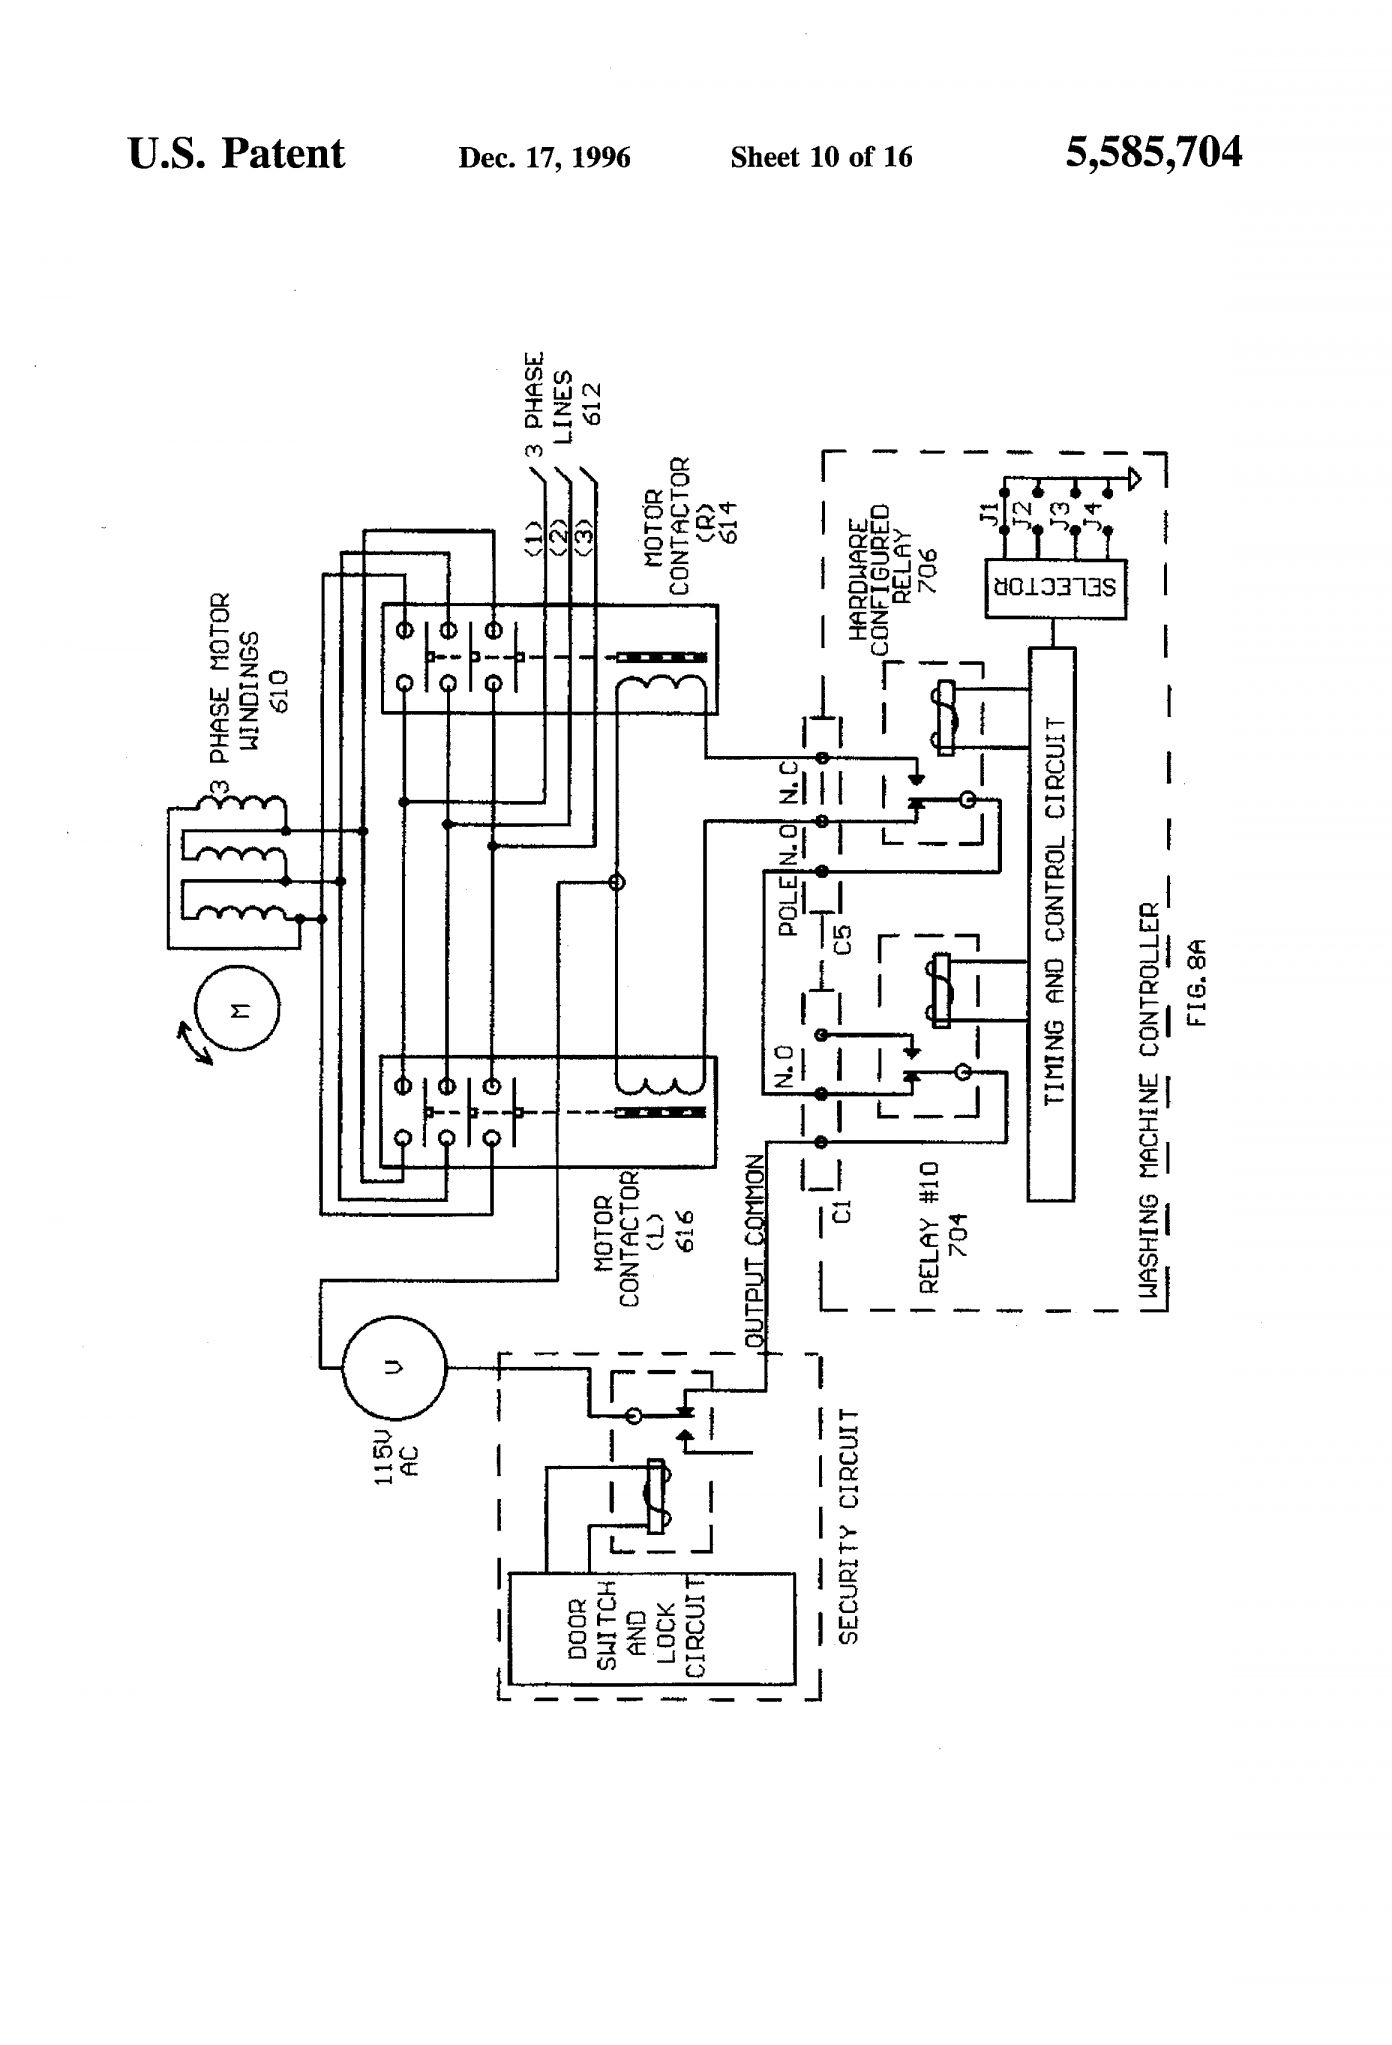 Ge Electric Motor Wiring Diagram And Wiring Diagram Ge Washer G New Wiring Resources Washing Machine Motor Basic Electrical Wiring Diagram